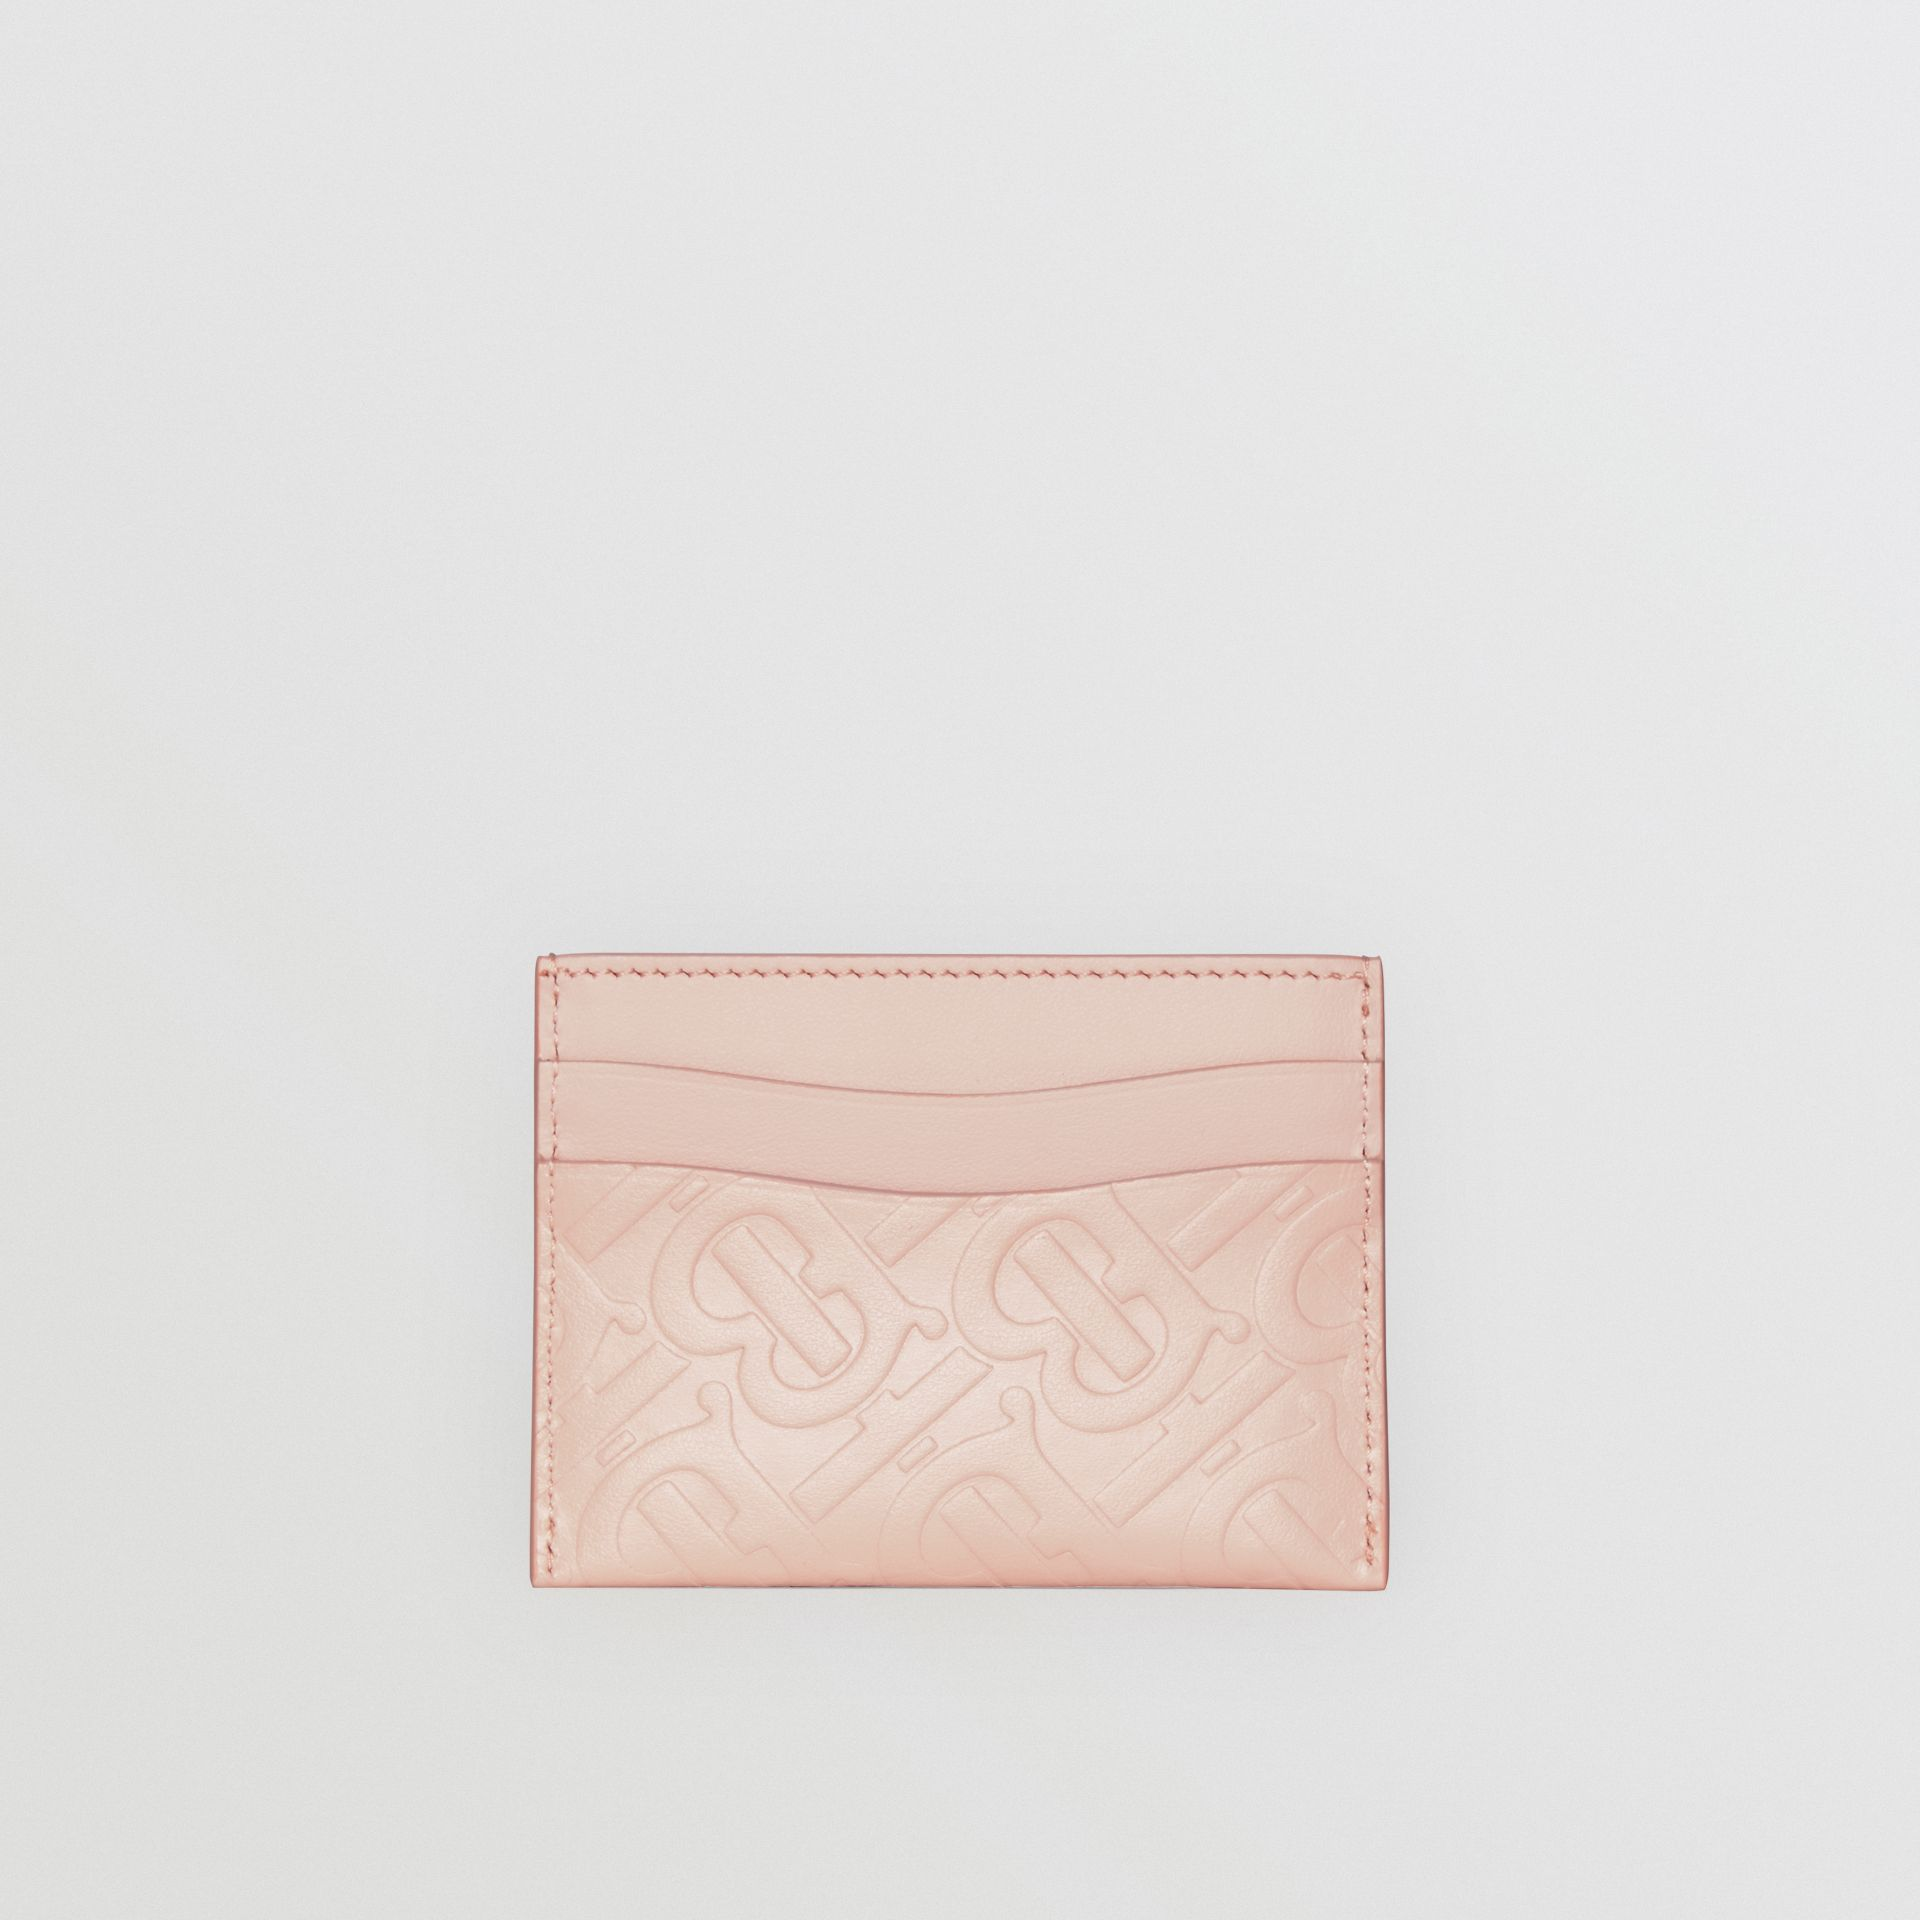 Monogram Leather Card Case in Rose Beige - Women | Burberry United Kingdom - gallery image 4